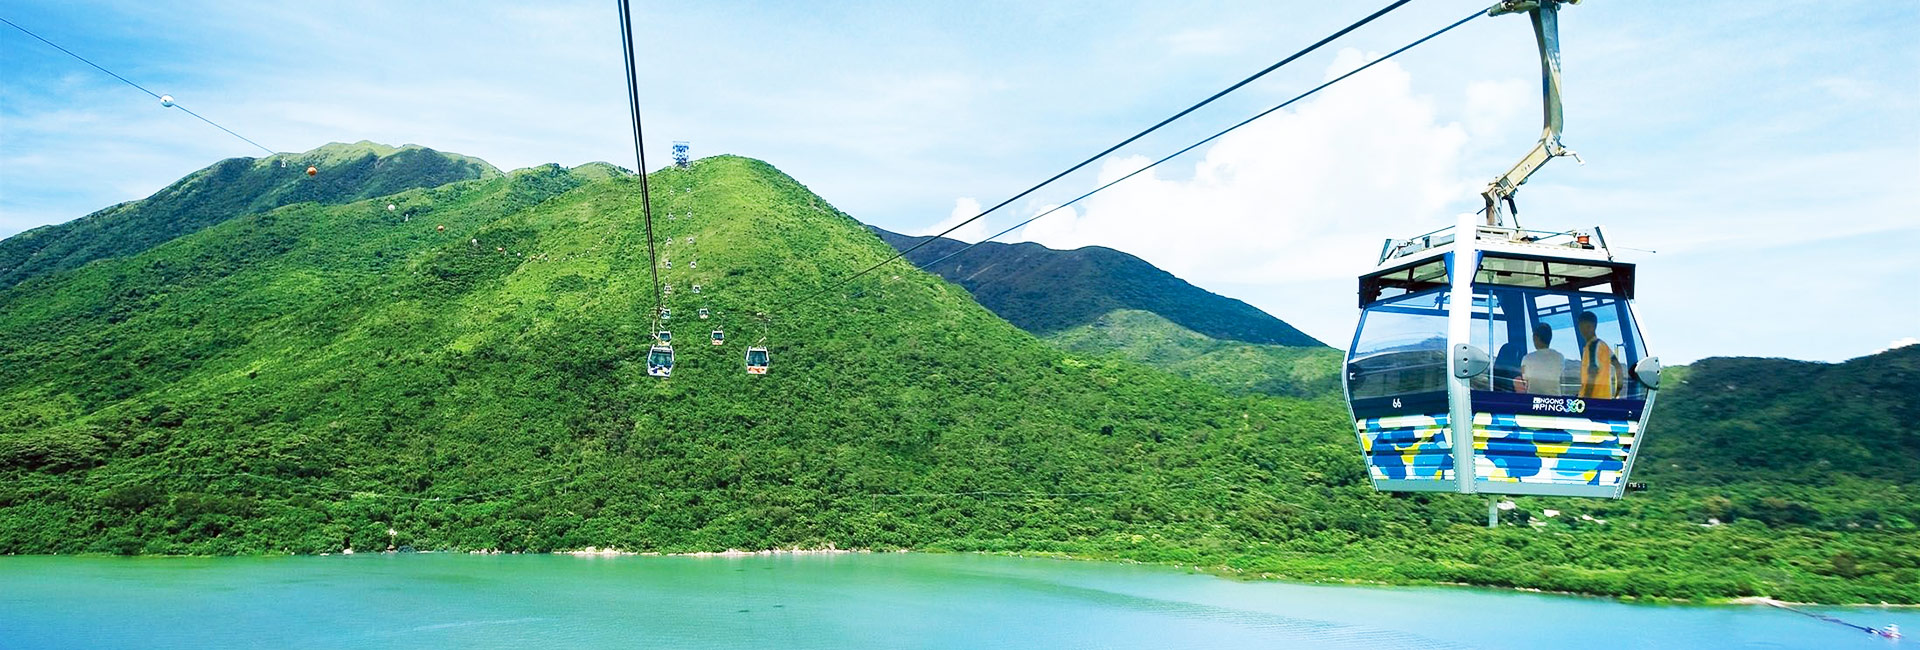 Hong Kong Tour with Lantau Island